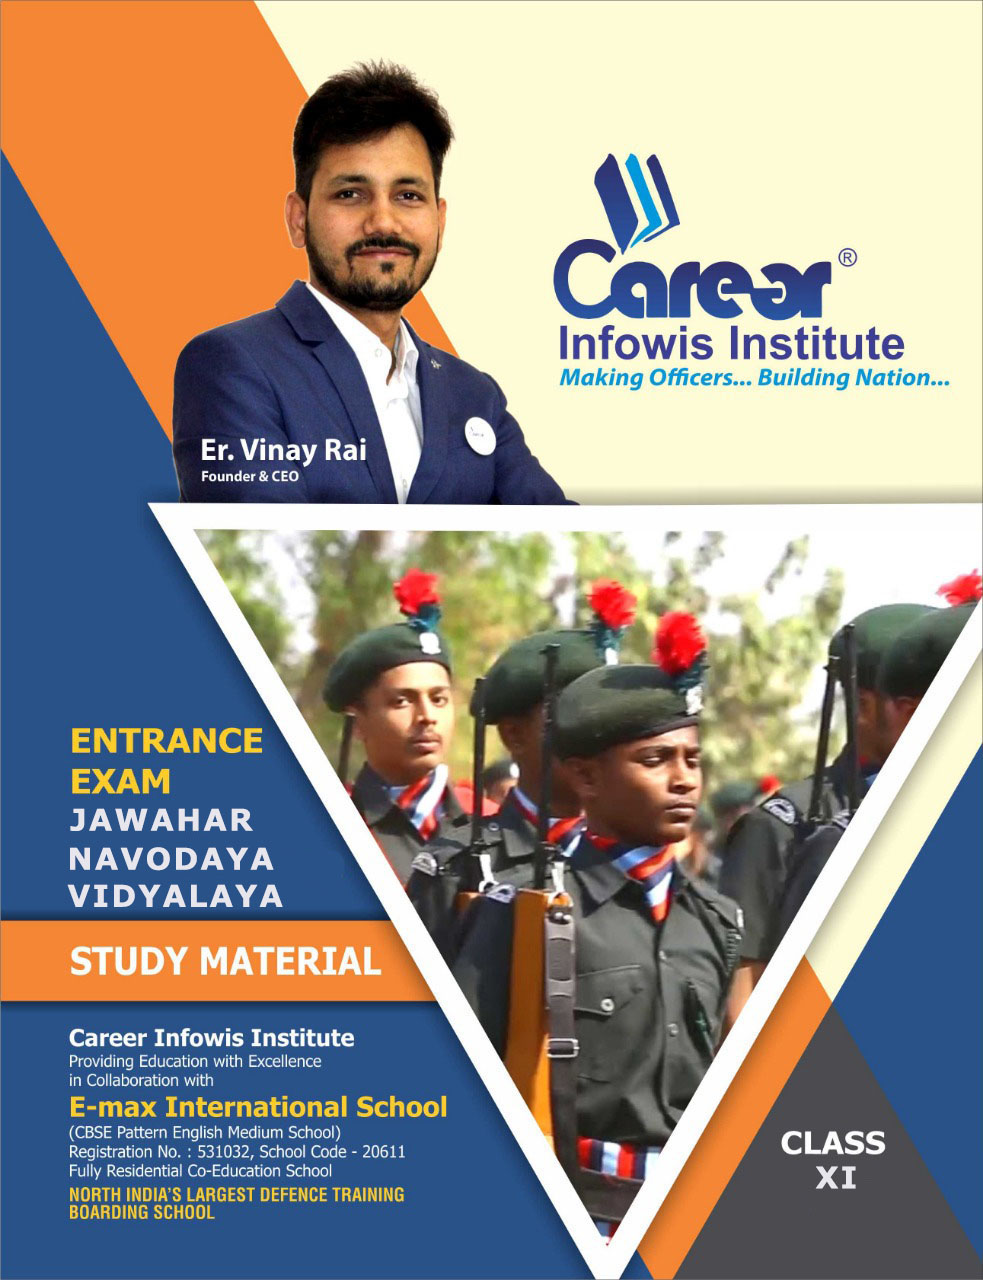 JAWAHAR NAVODAYA SCHOOL ENTRANCE BOOKS FOR CLASS 11TH.